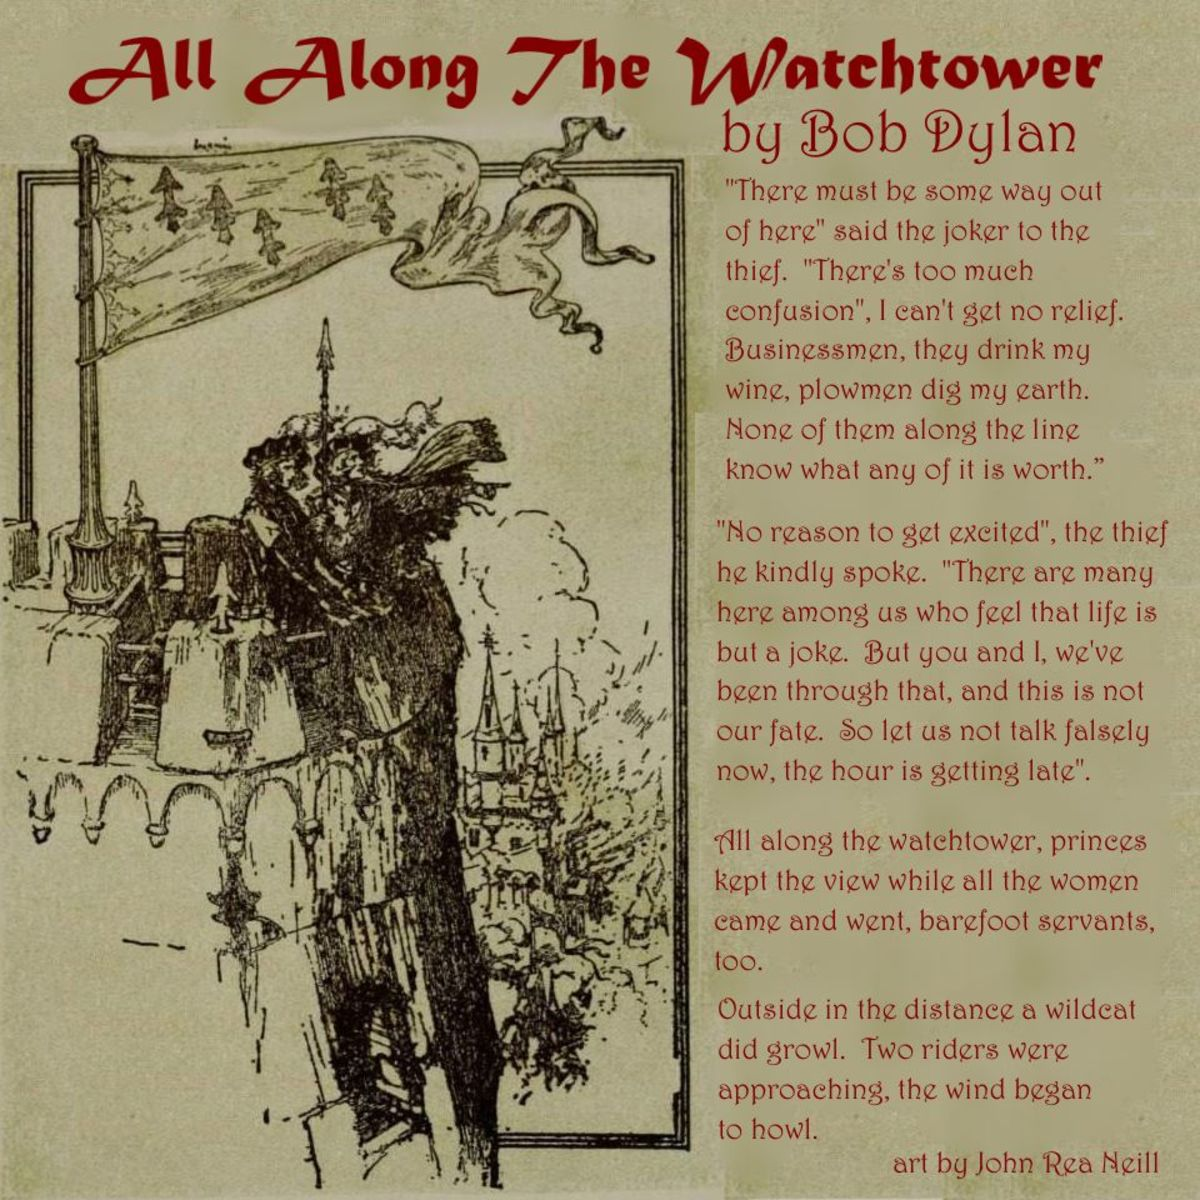 all-along-the-watchtower-analysis